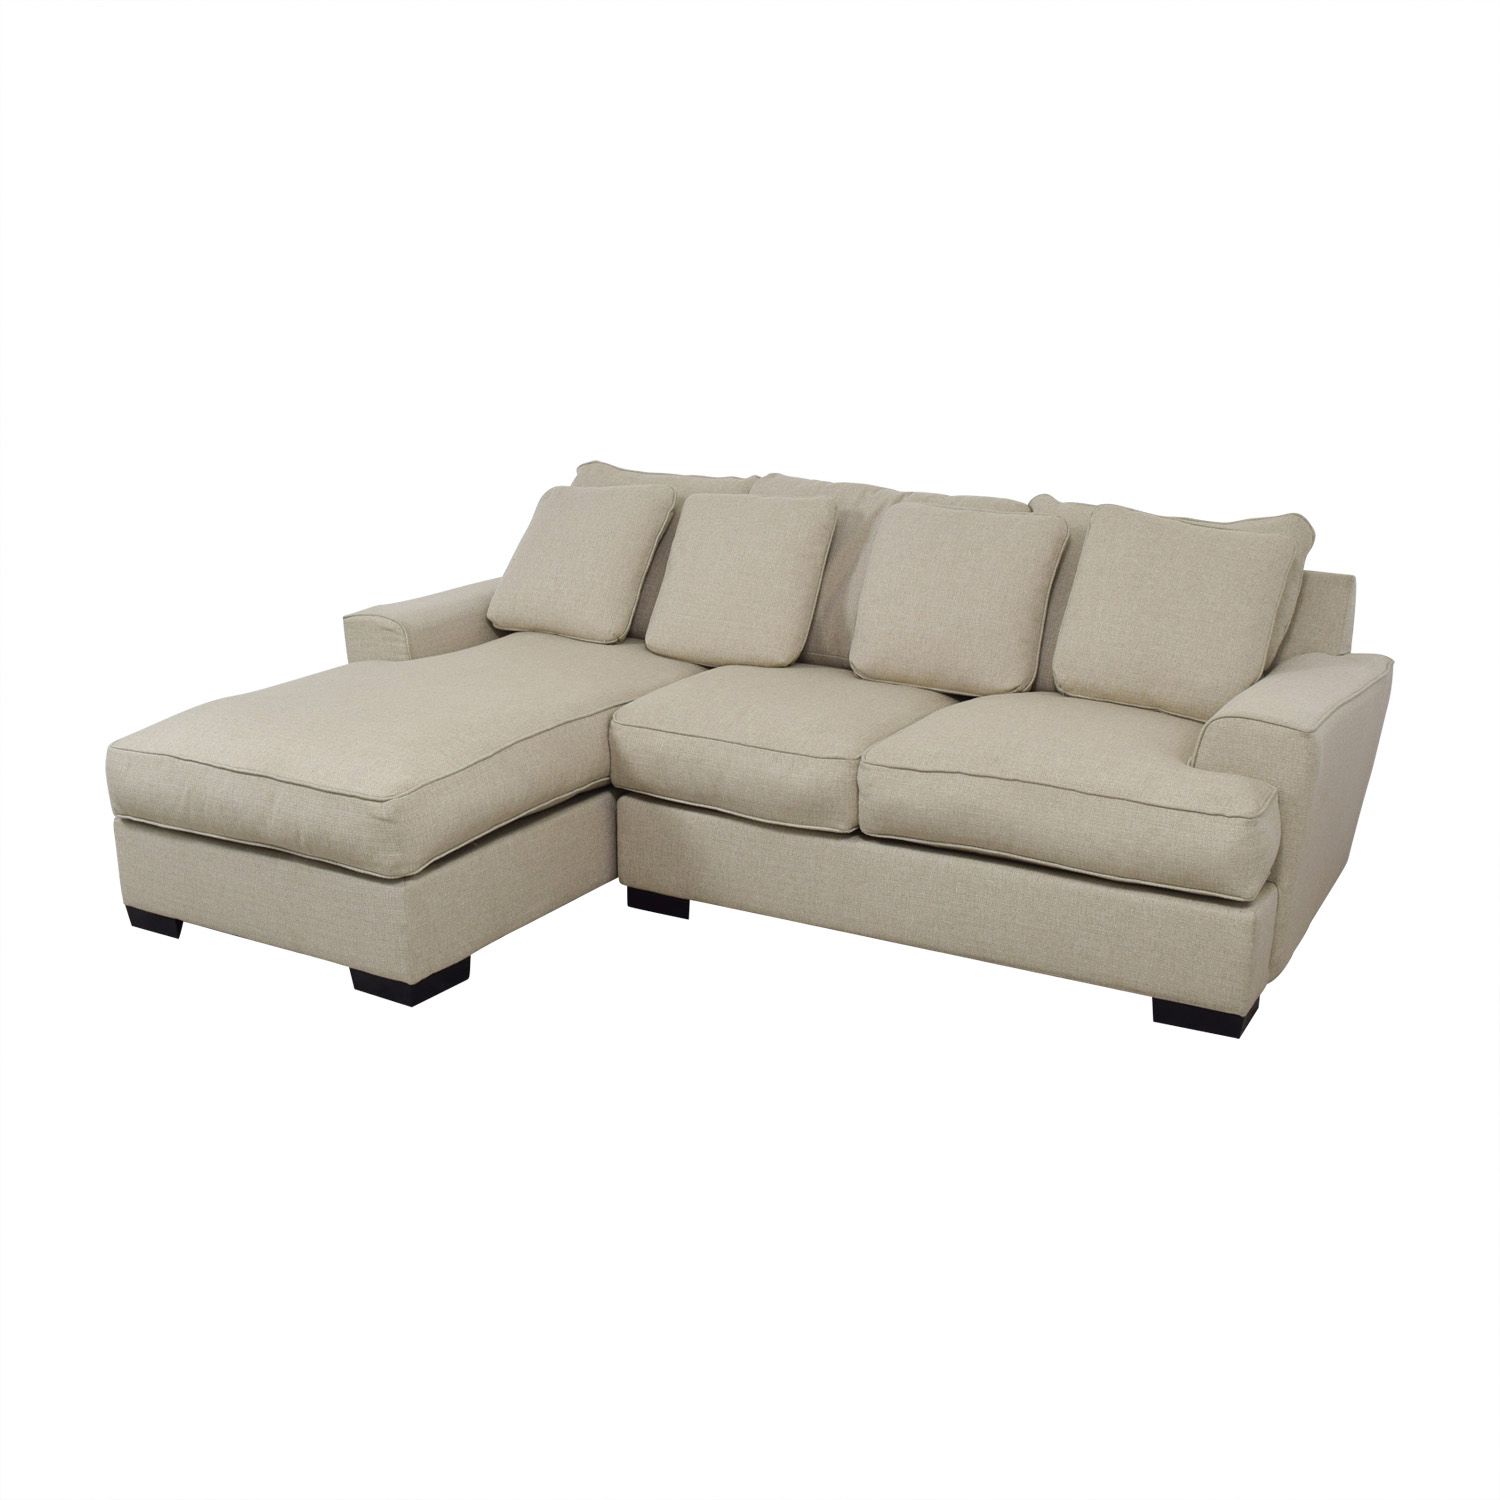 Sectional Sofas At Macys: Macy's Macy's Ainsley Beige Chaise Sectional / Sofas